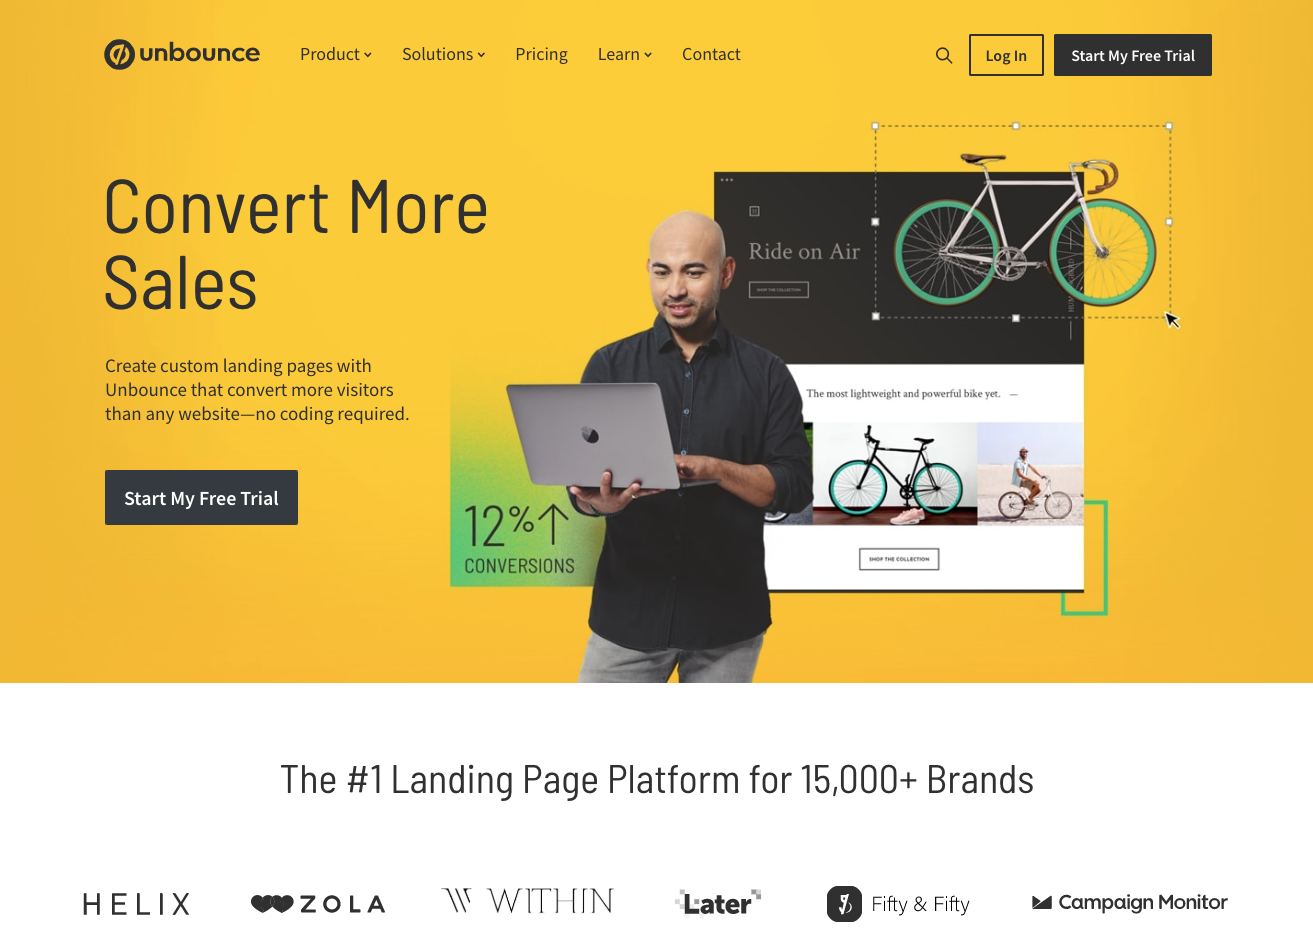 Unbounce's homepage